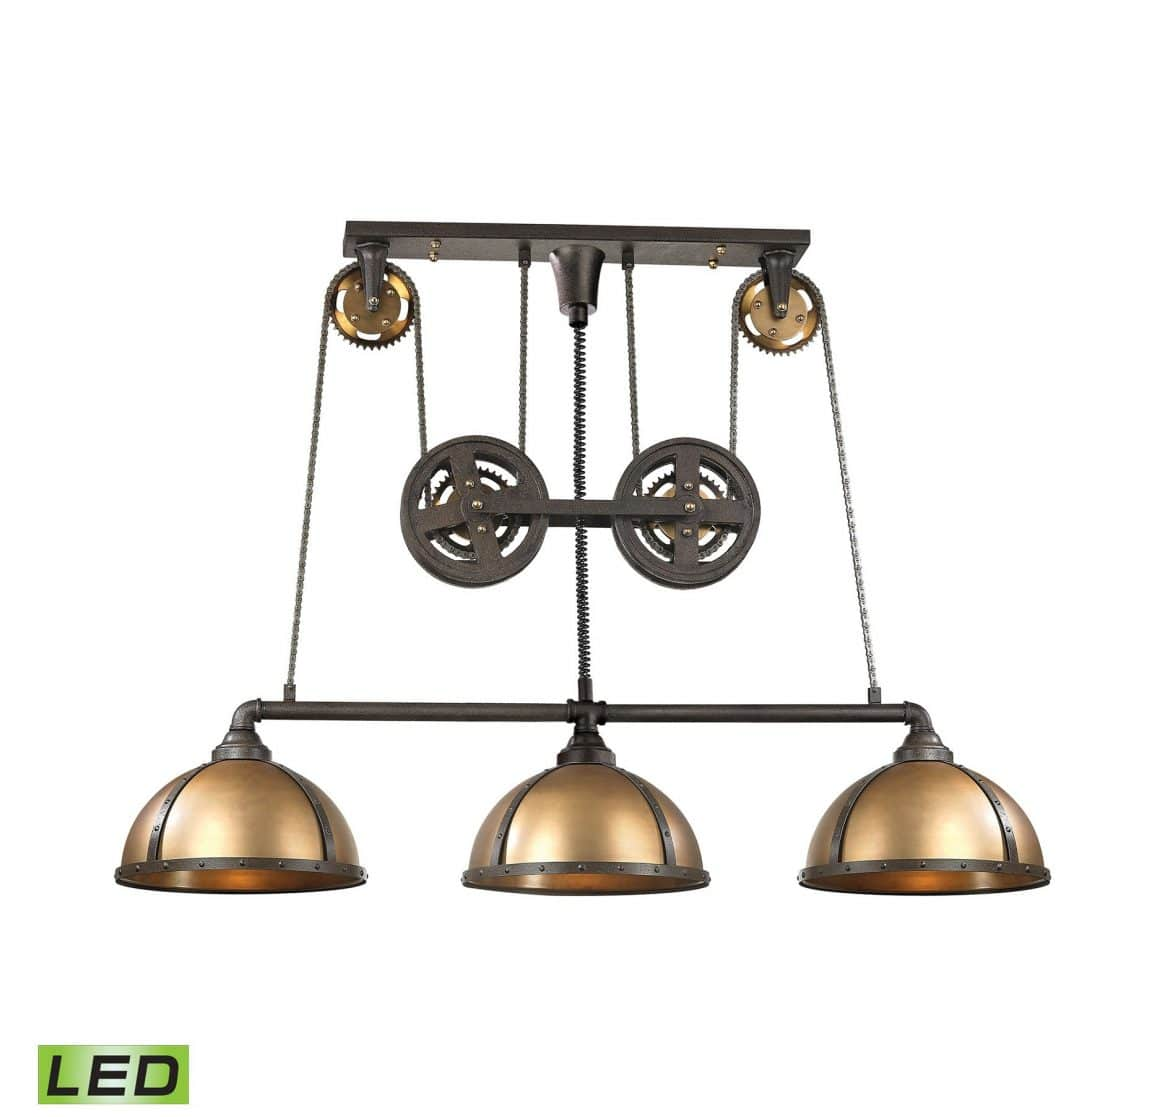 Pool Table Light Black: Light LED Billiard Island In Vintage Brass